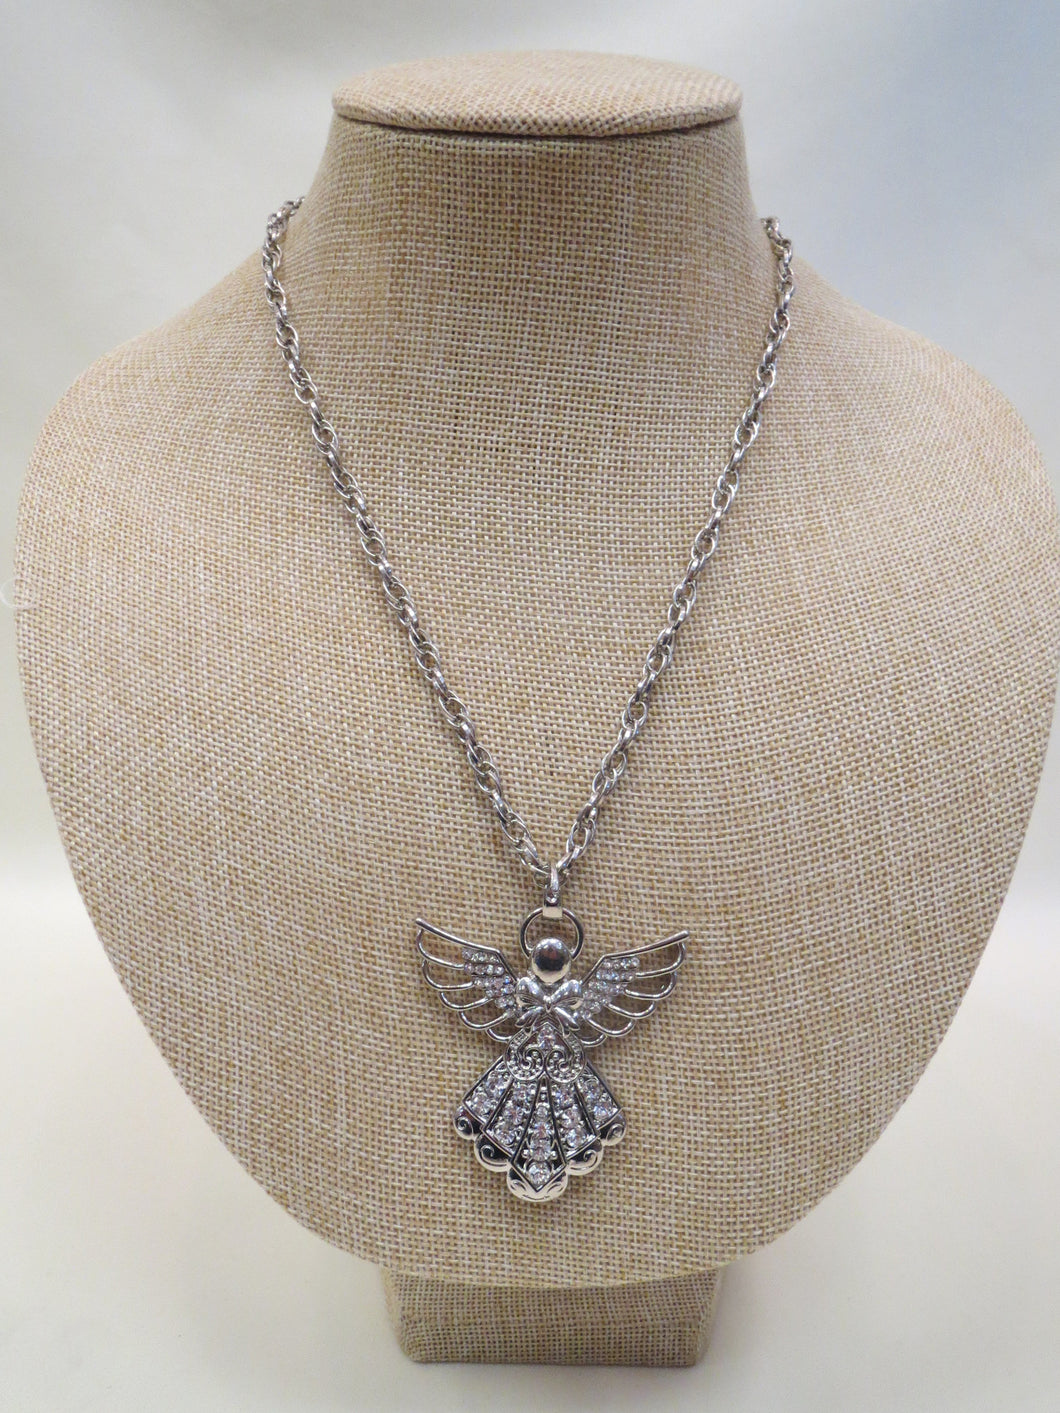 ADO | Embellished Silver Angel Necklace - All Decd Out